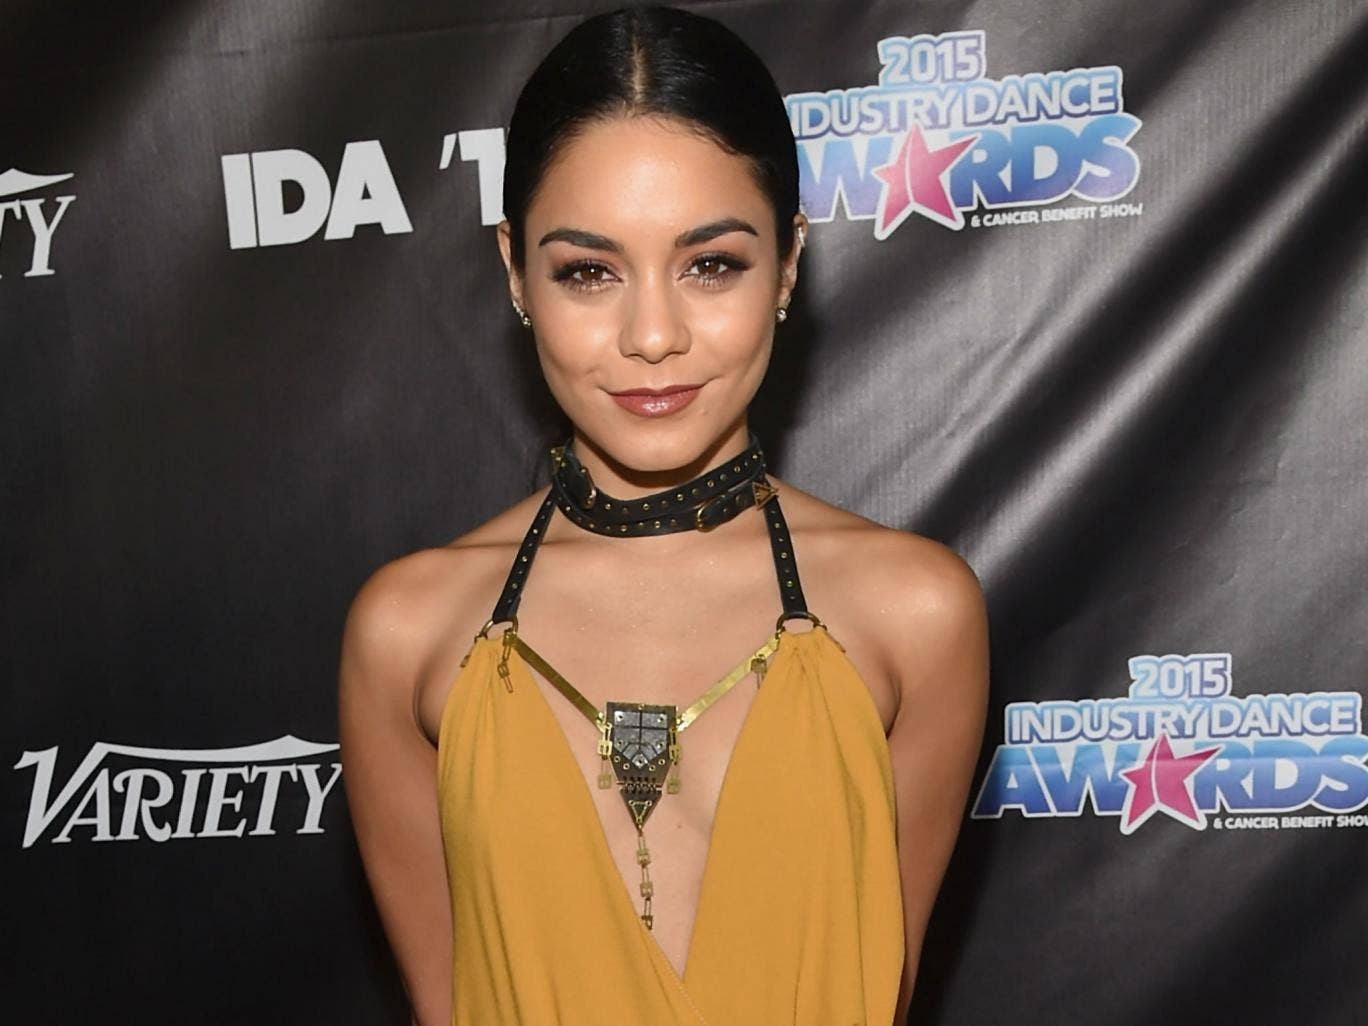 Vanessa Hudgens 'investigated by police' for Instagram photo ...